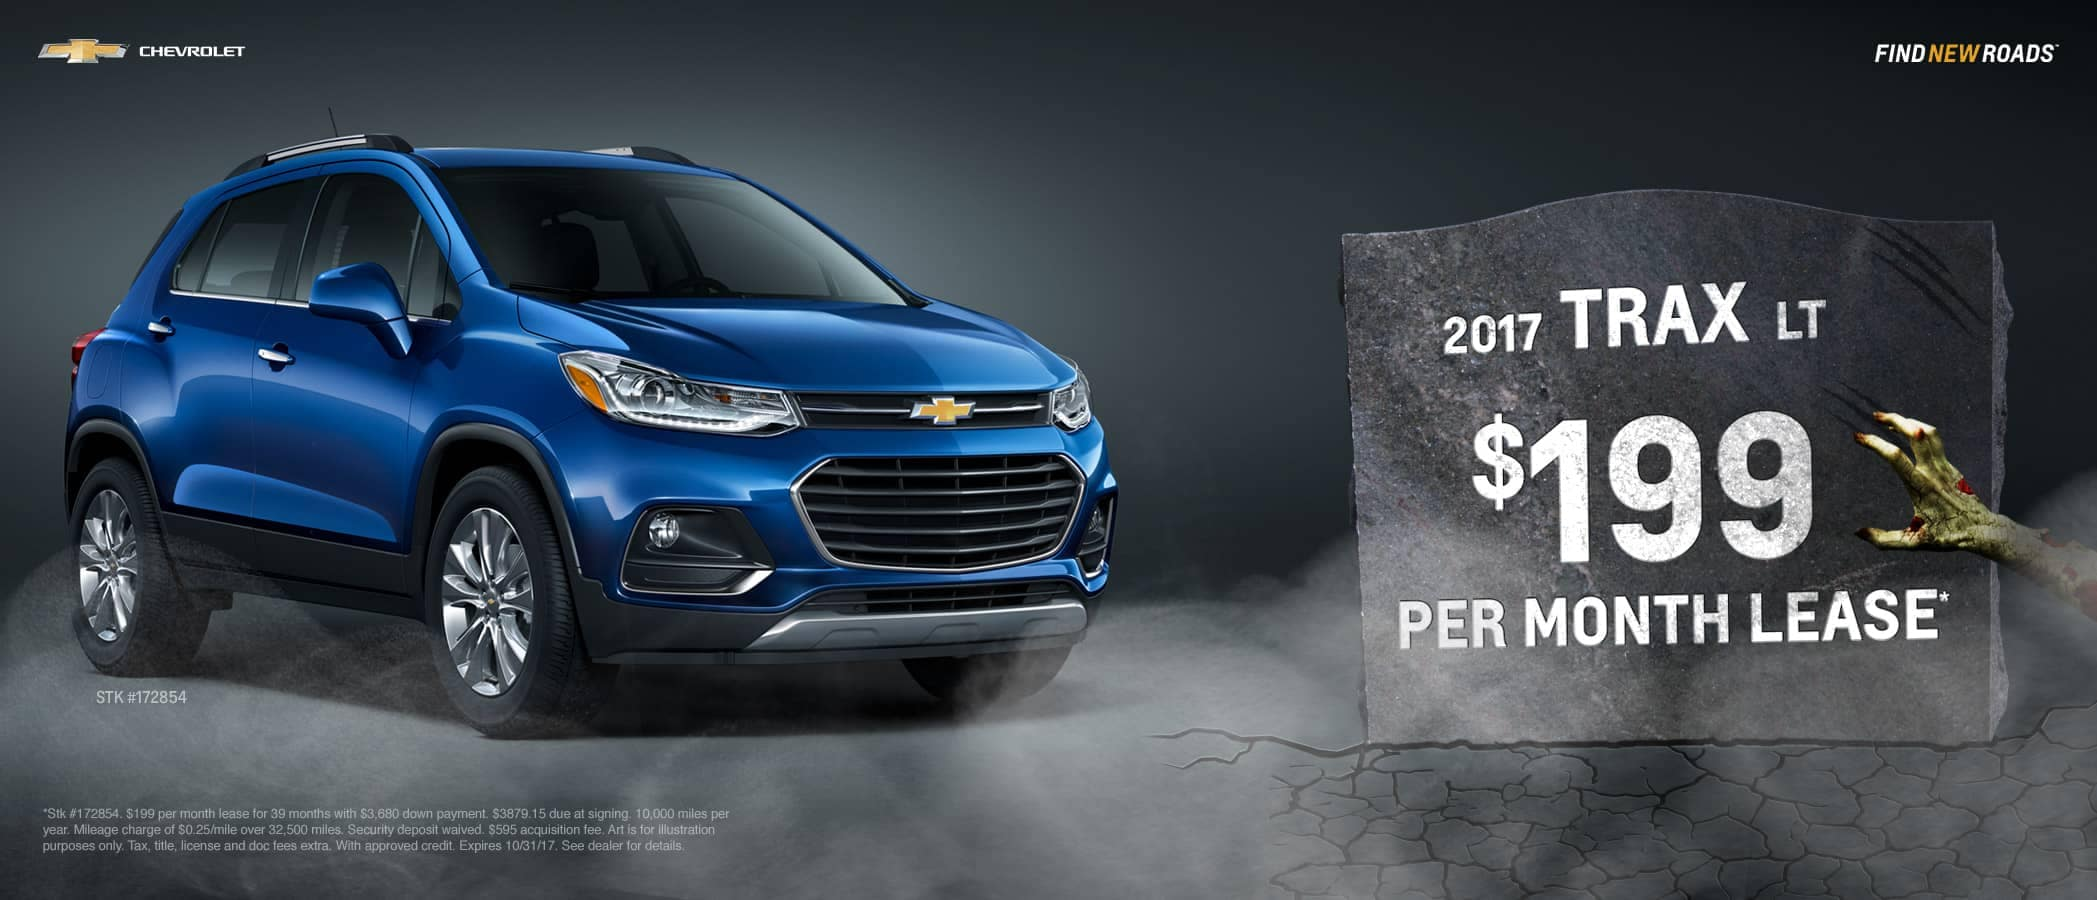 Capitol Chevrolet Austin Tx >> Capitol Chevrolet | New Chevy and Used Auto Dealership in Austin, TX